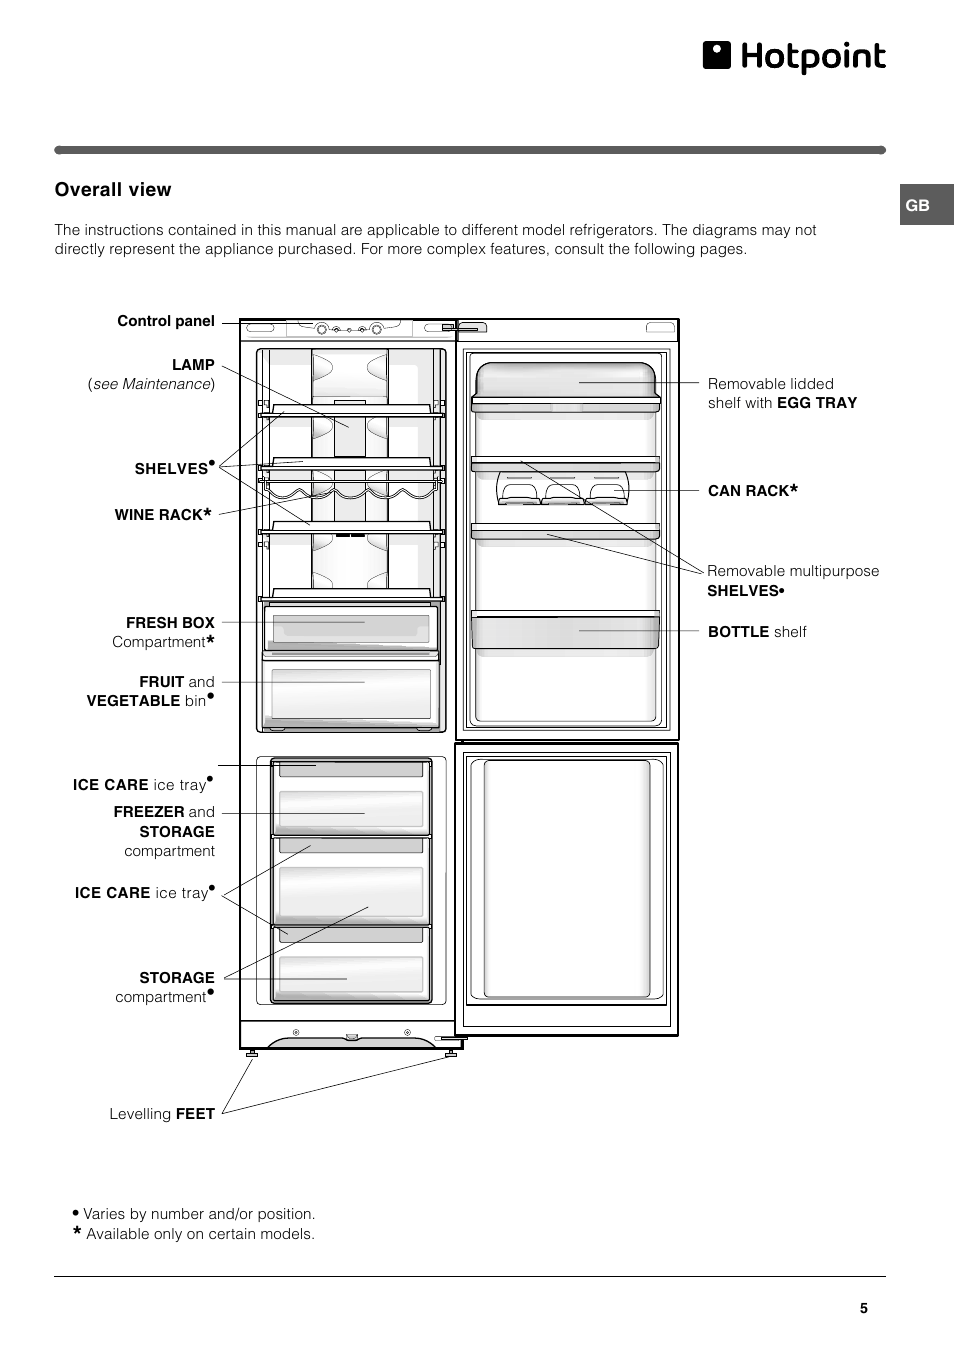 Hotpoint Instruction Manuals